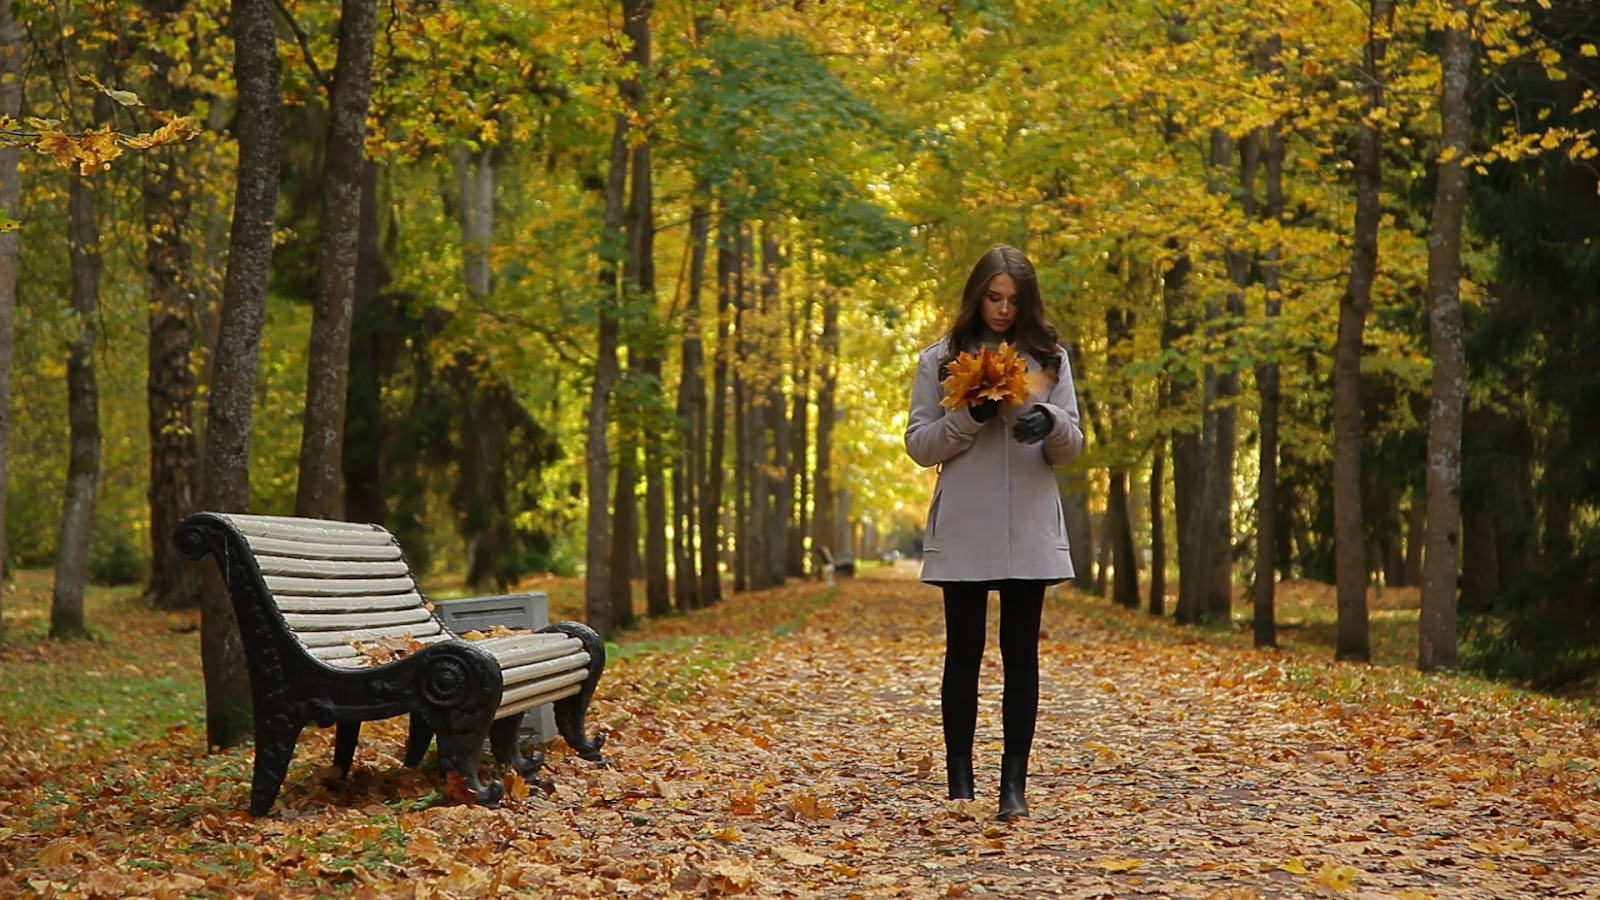 Woman walking through a park. Bench. Fall. Colorful leaves. Trees